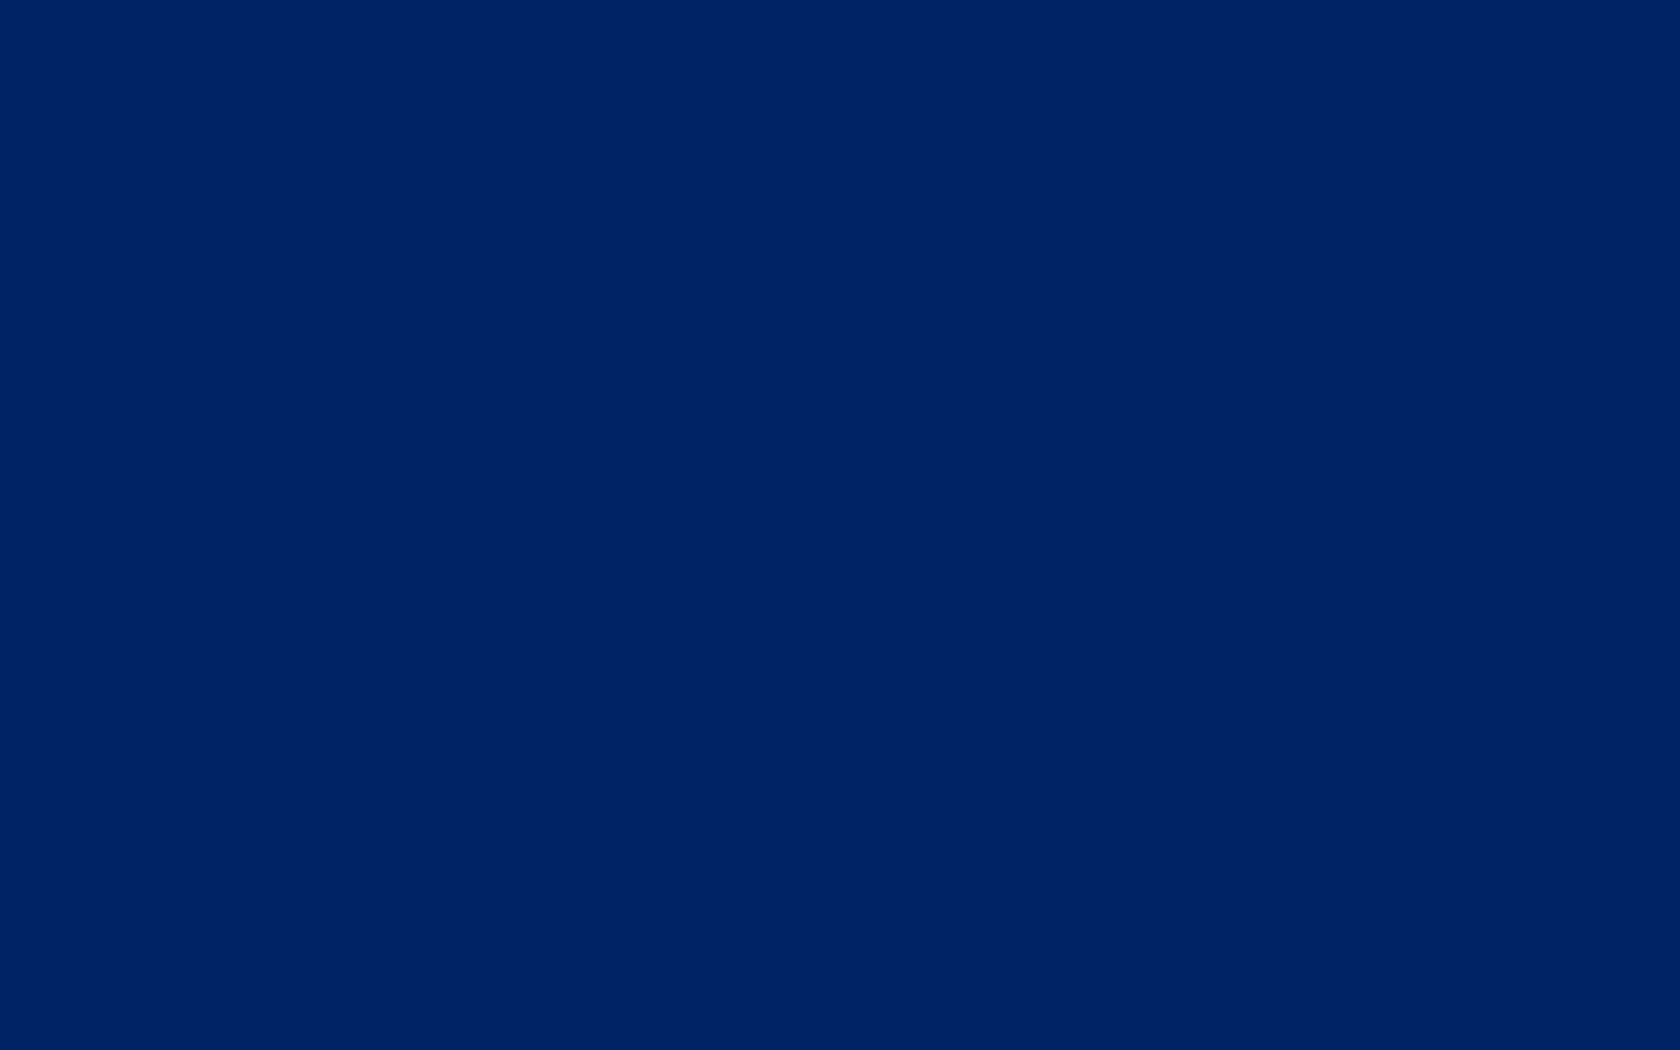 1680x1050 Royal Blue Traditional Solid Color Background